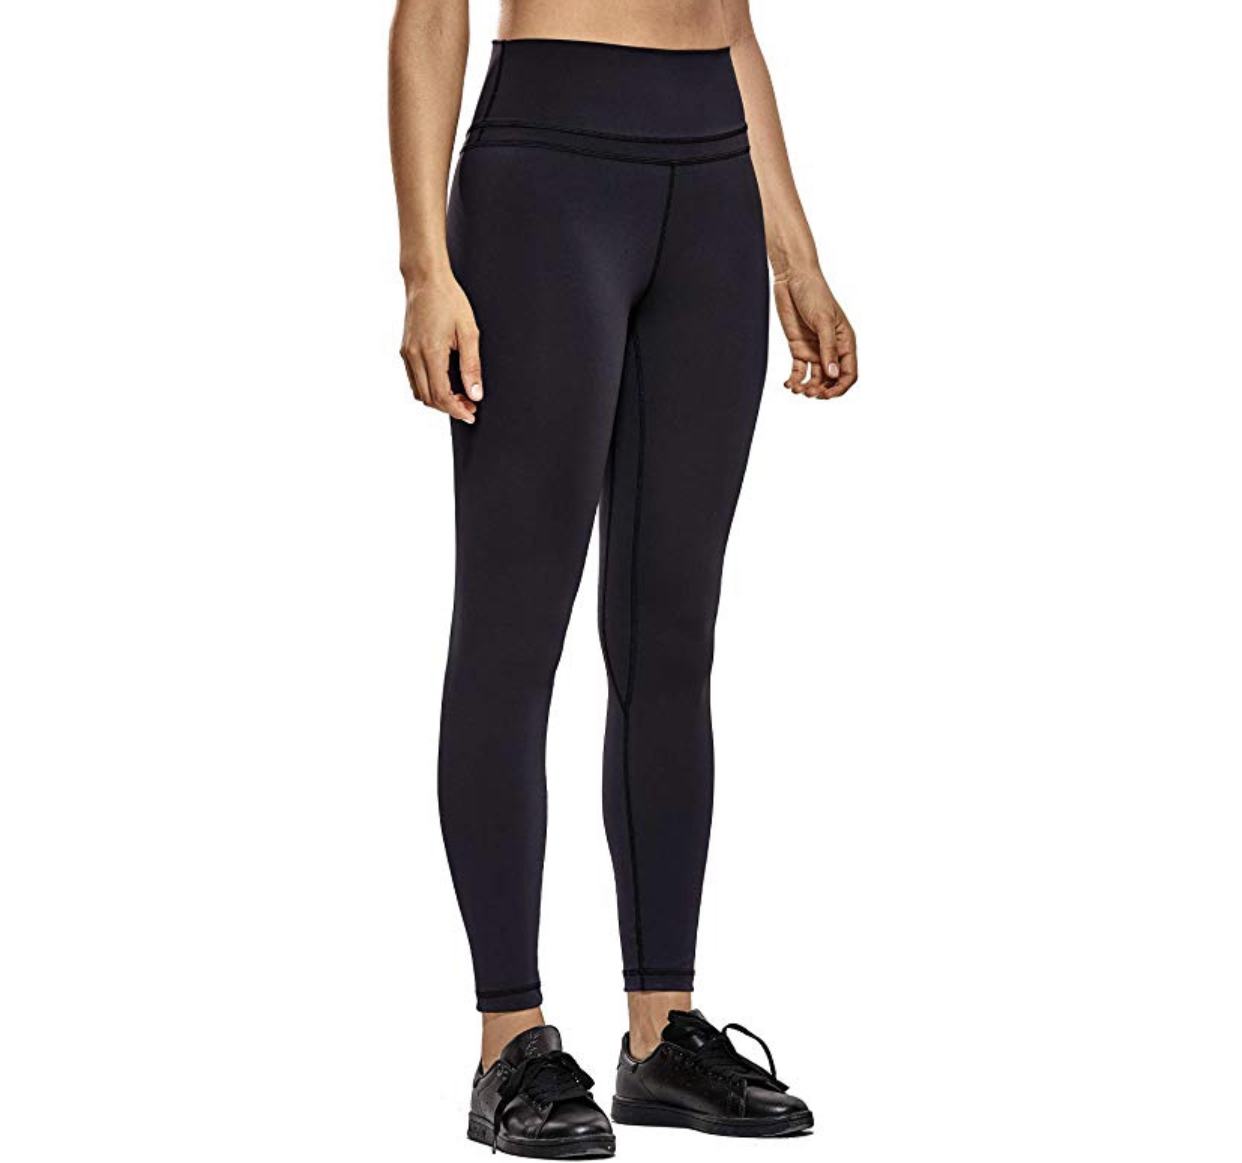 The Best Amazon Basics, the best wardrobe basics from Amazon, Lululemon Align leggings dupes